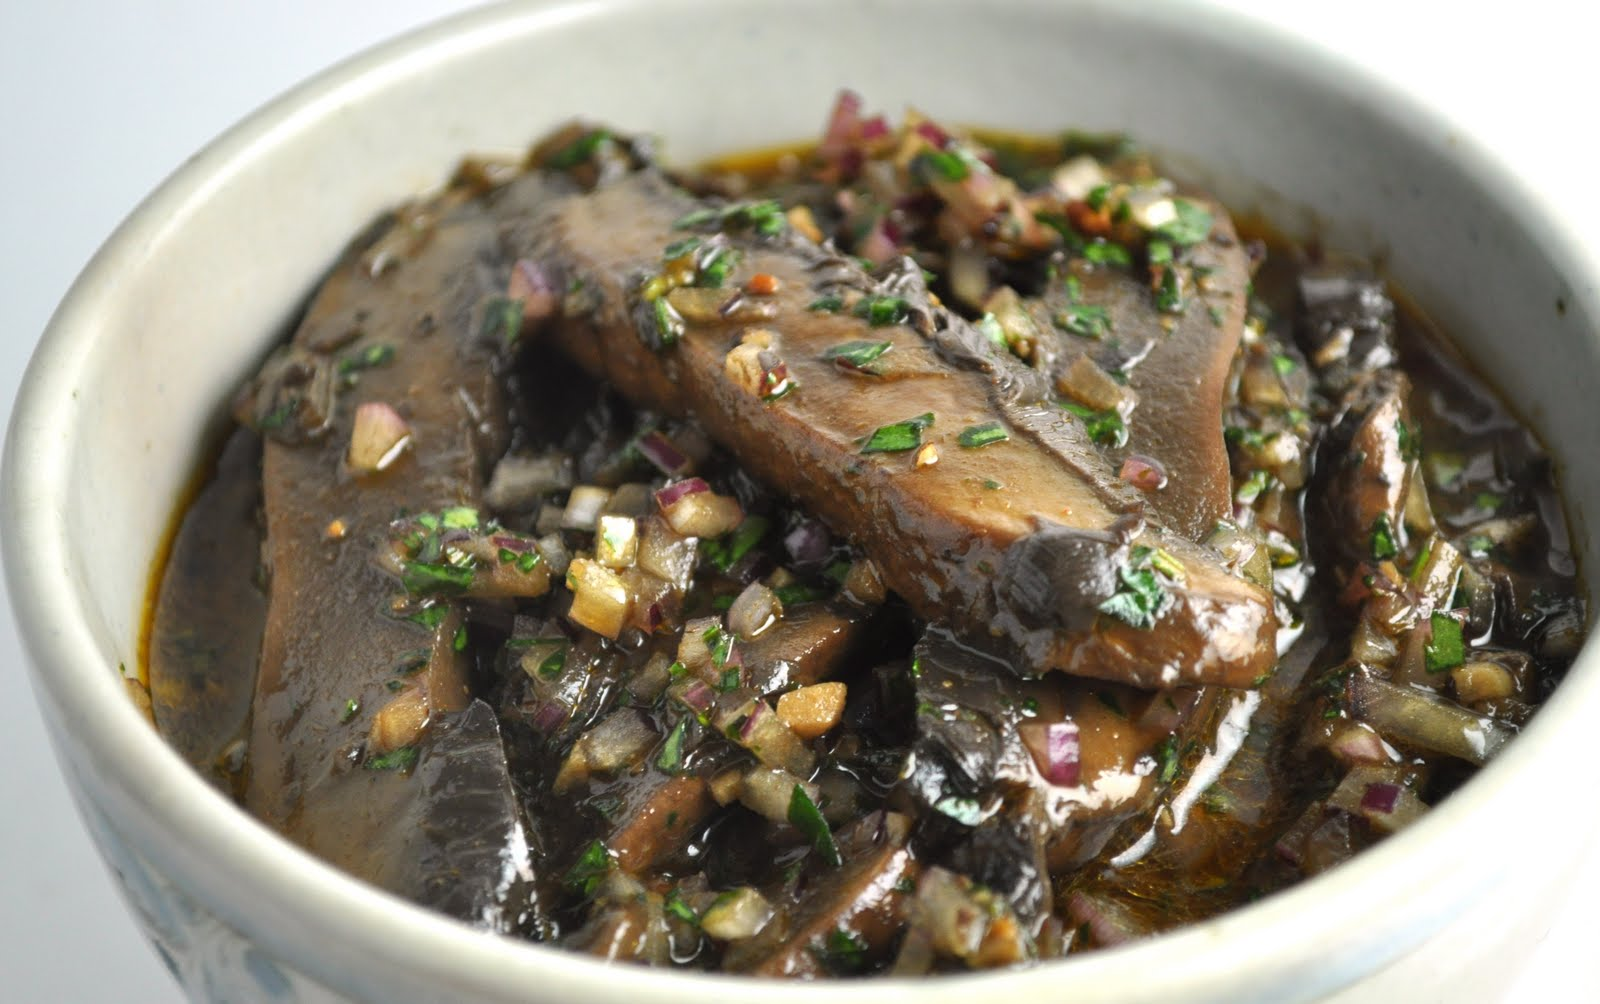 vegan ascent: Marinated Portobello Mushrooms